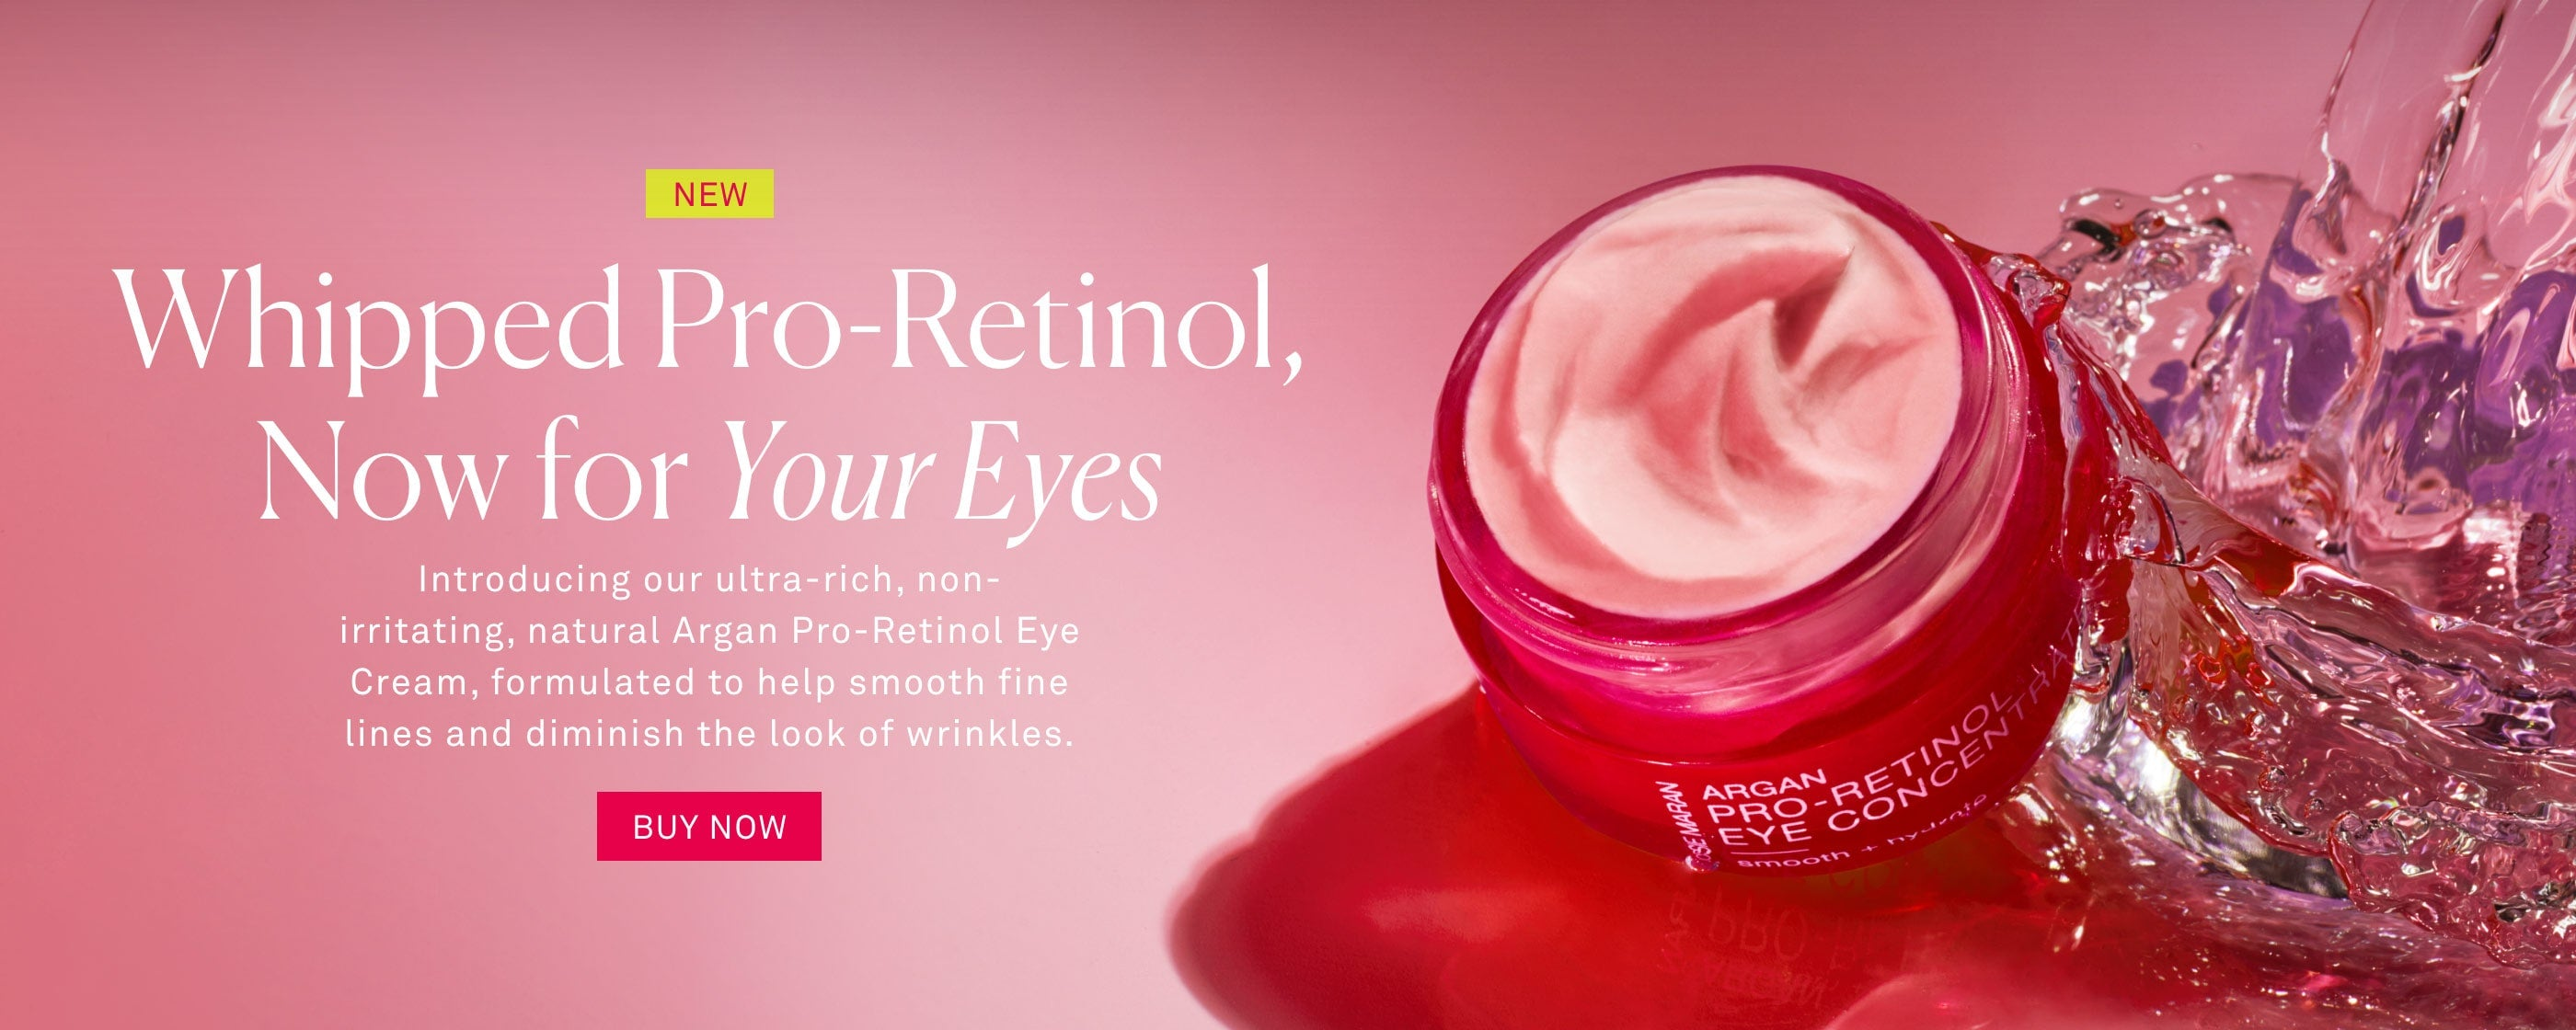 New Pro-Retinol Eye Cream